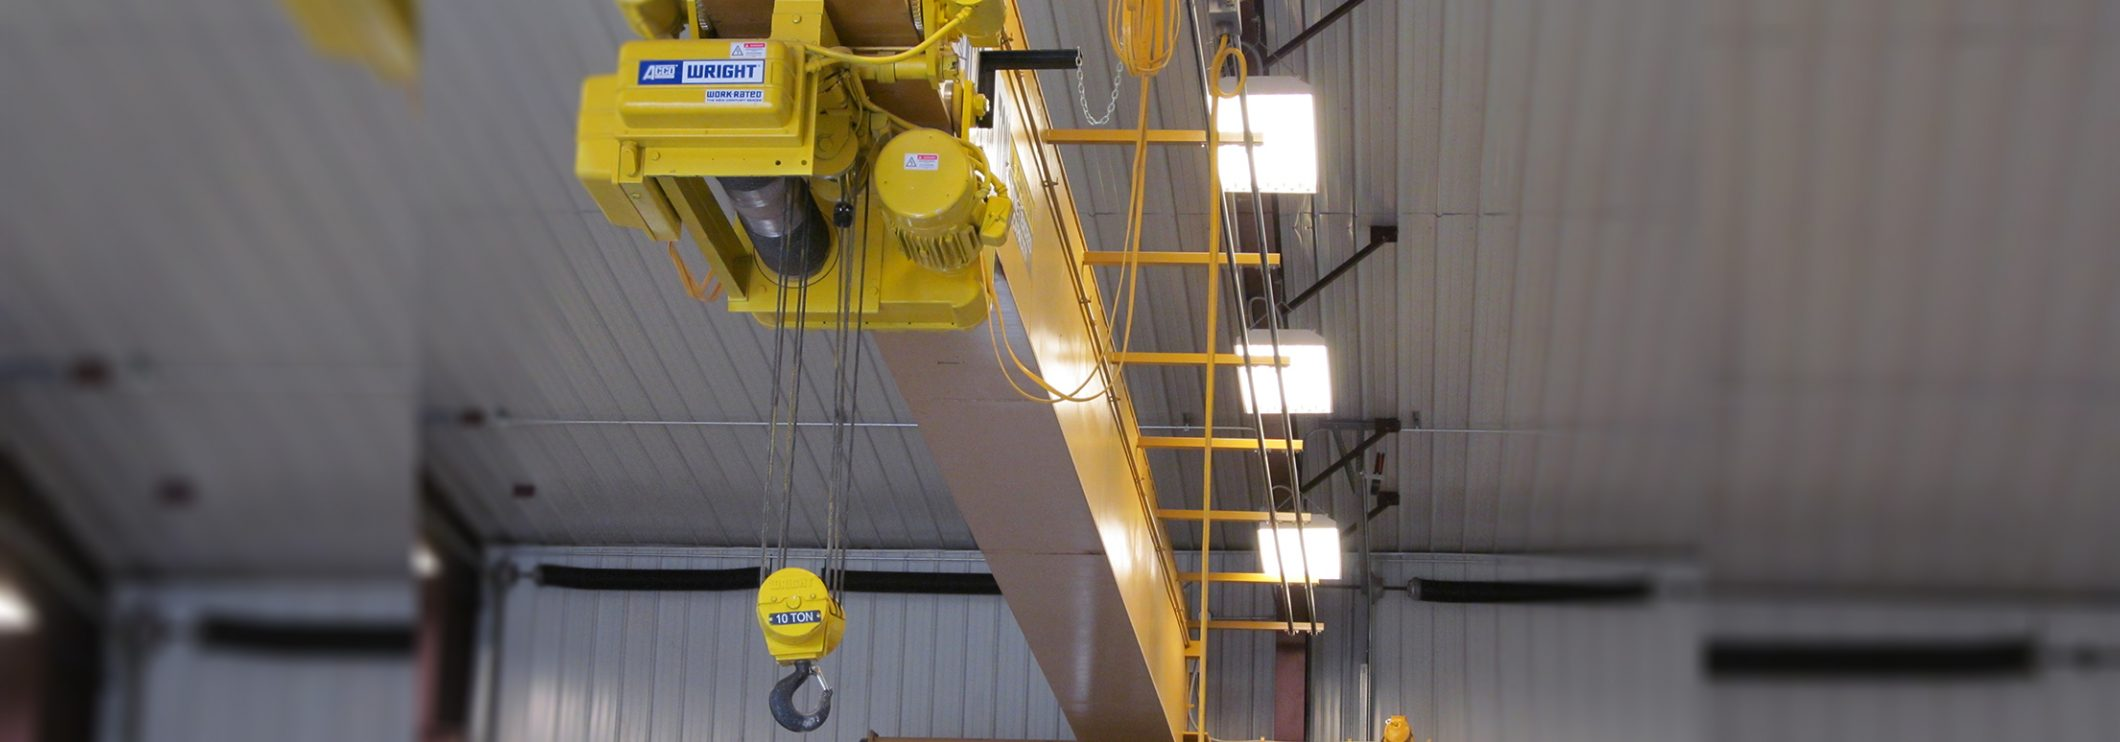 Hoists in Warehouse